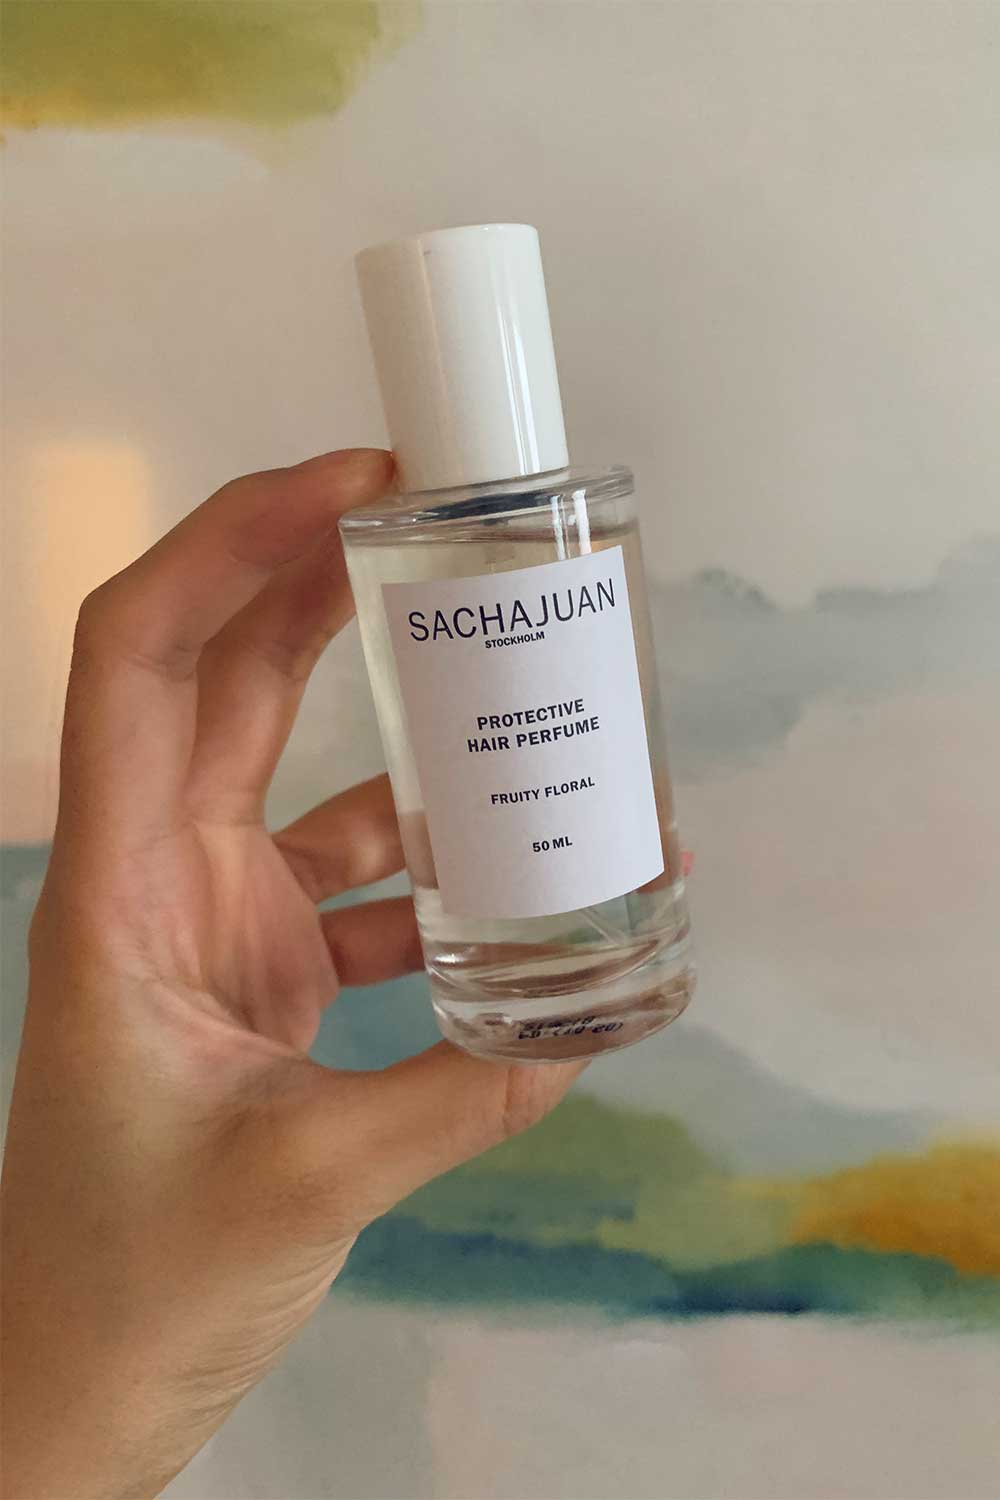 sacha-juan-hair-perfume-review